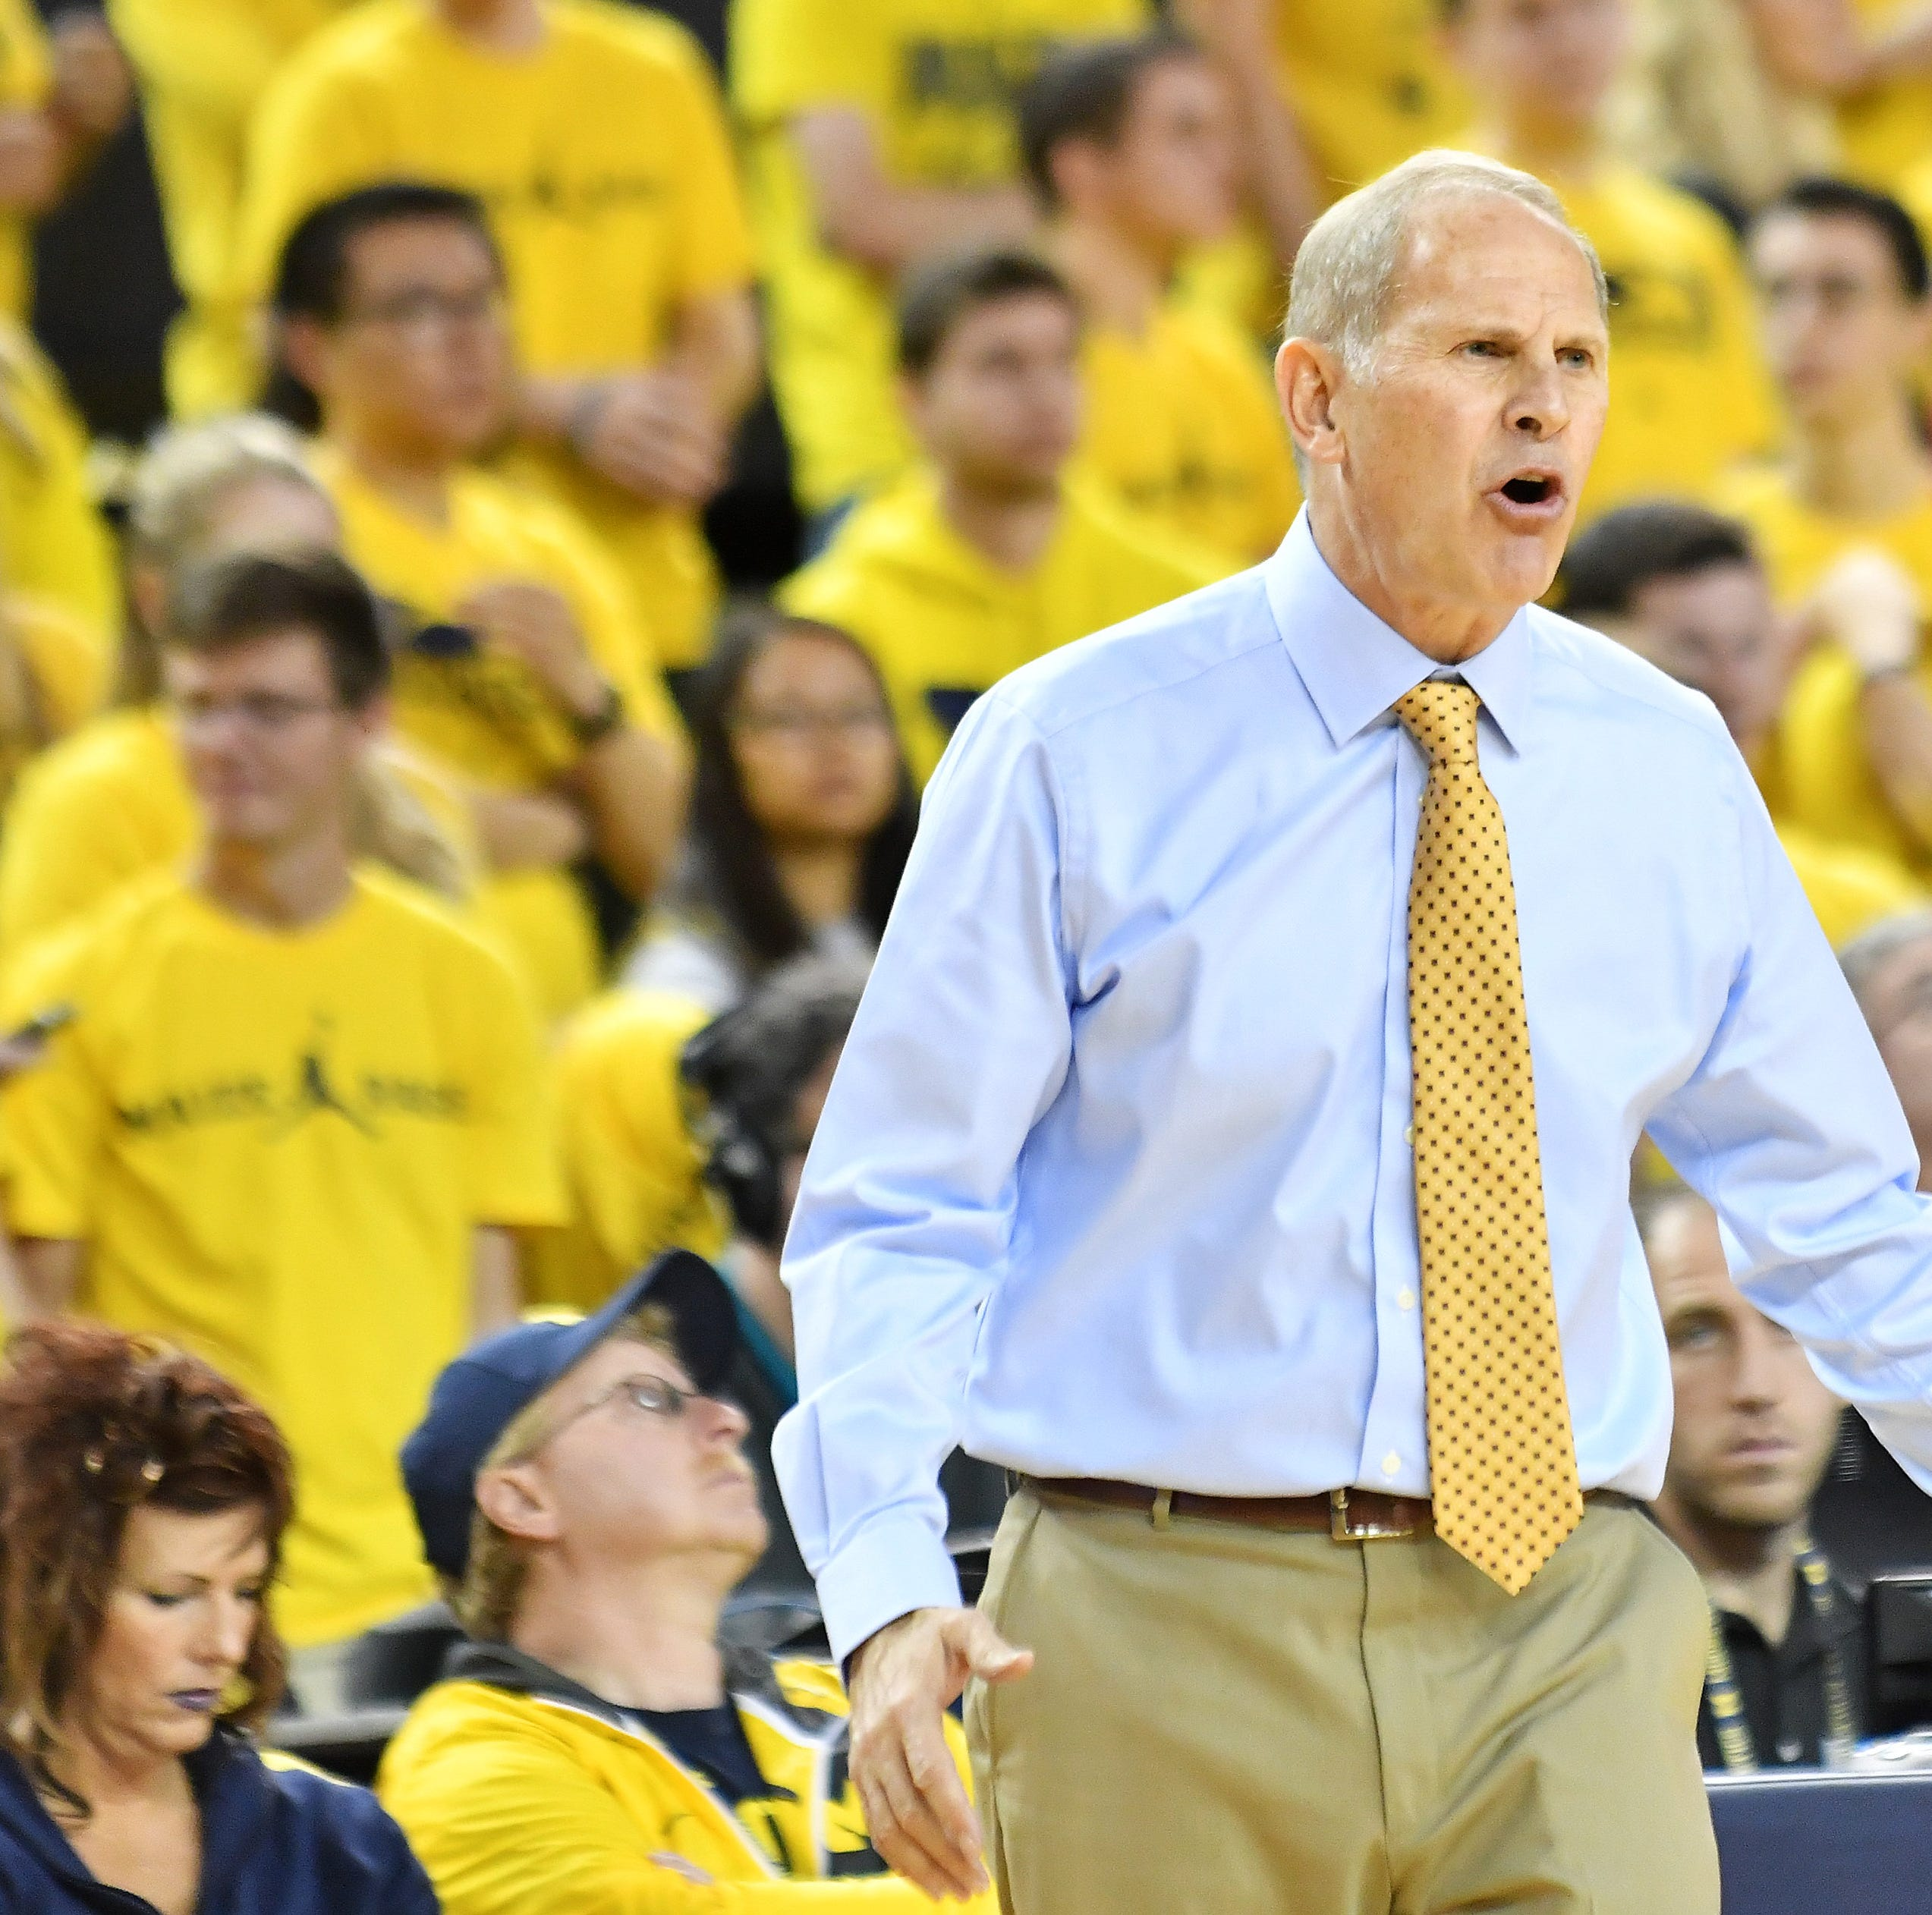 'Too difficult to pass up': Former Michigan coach Beilein pivots to turning Cavaliers around